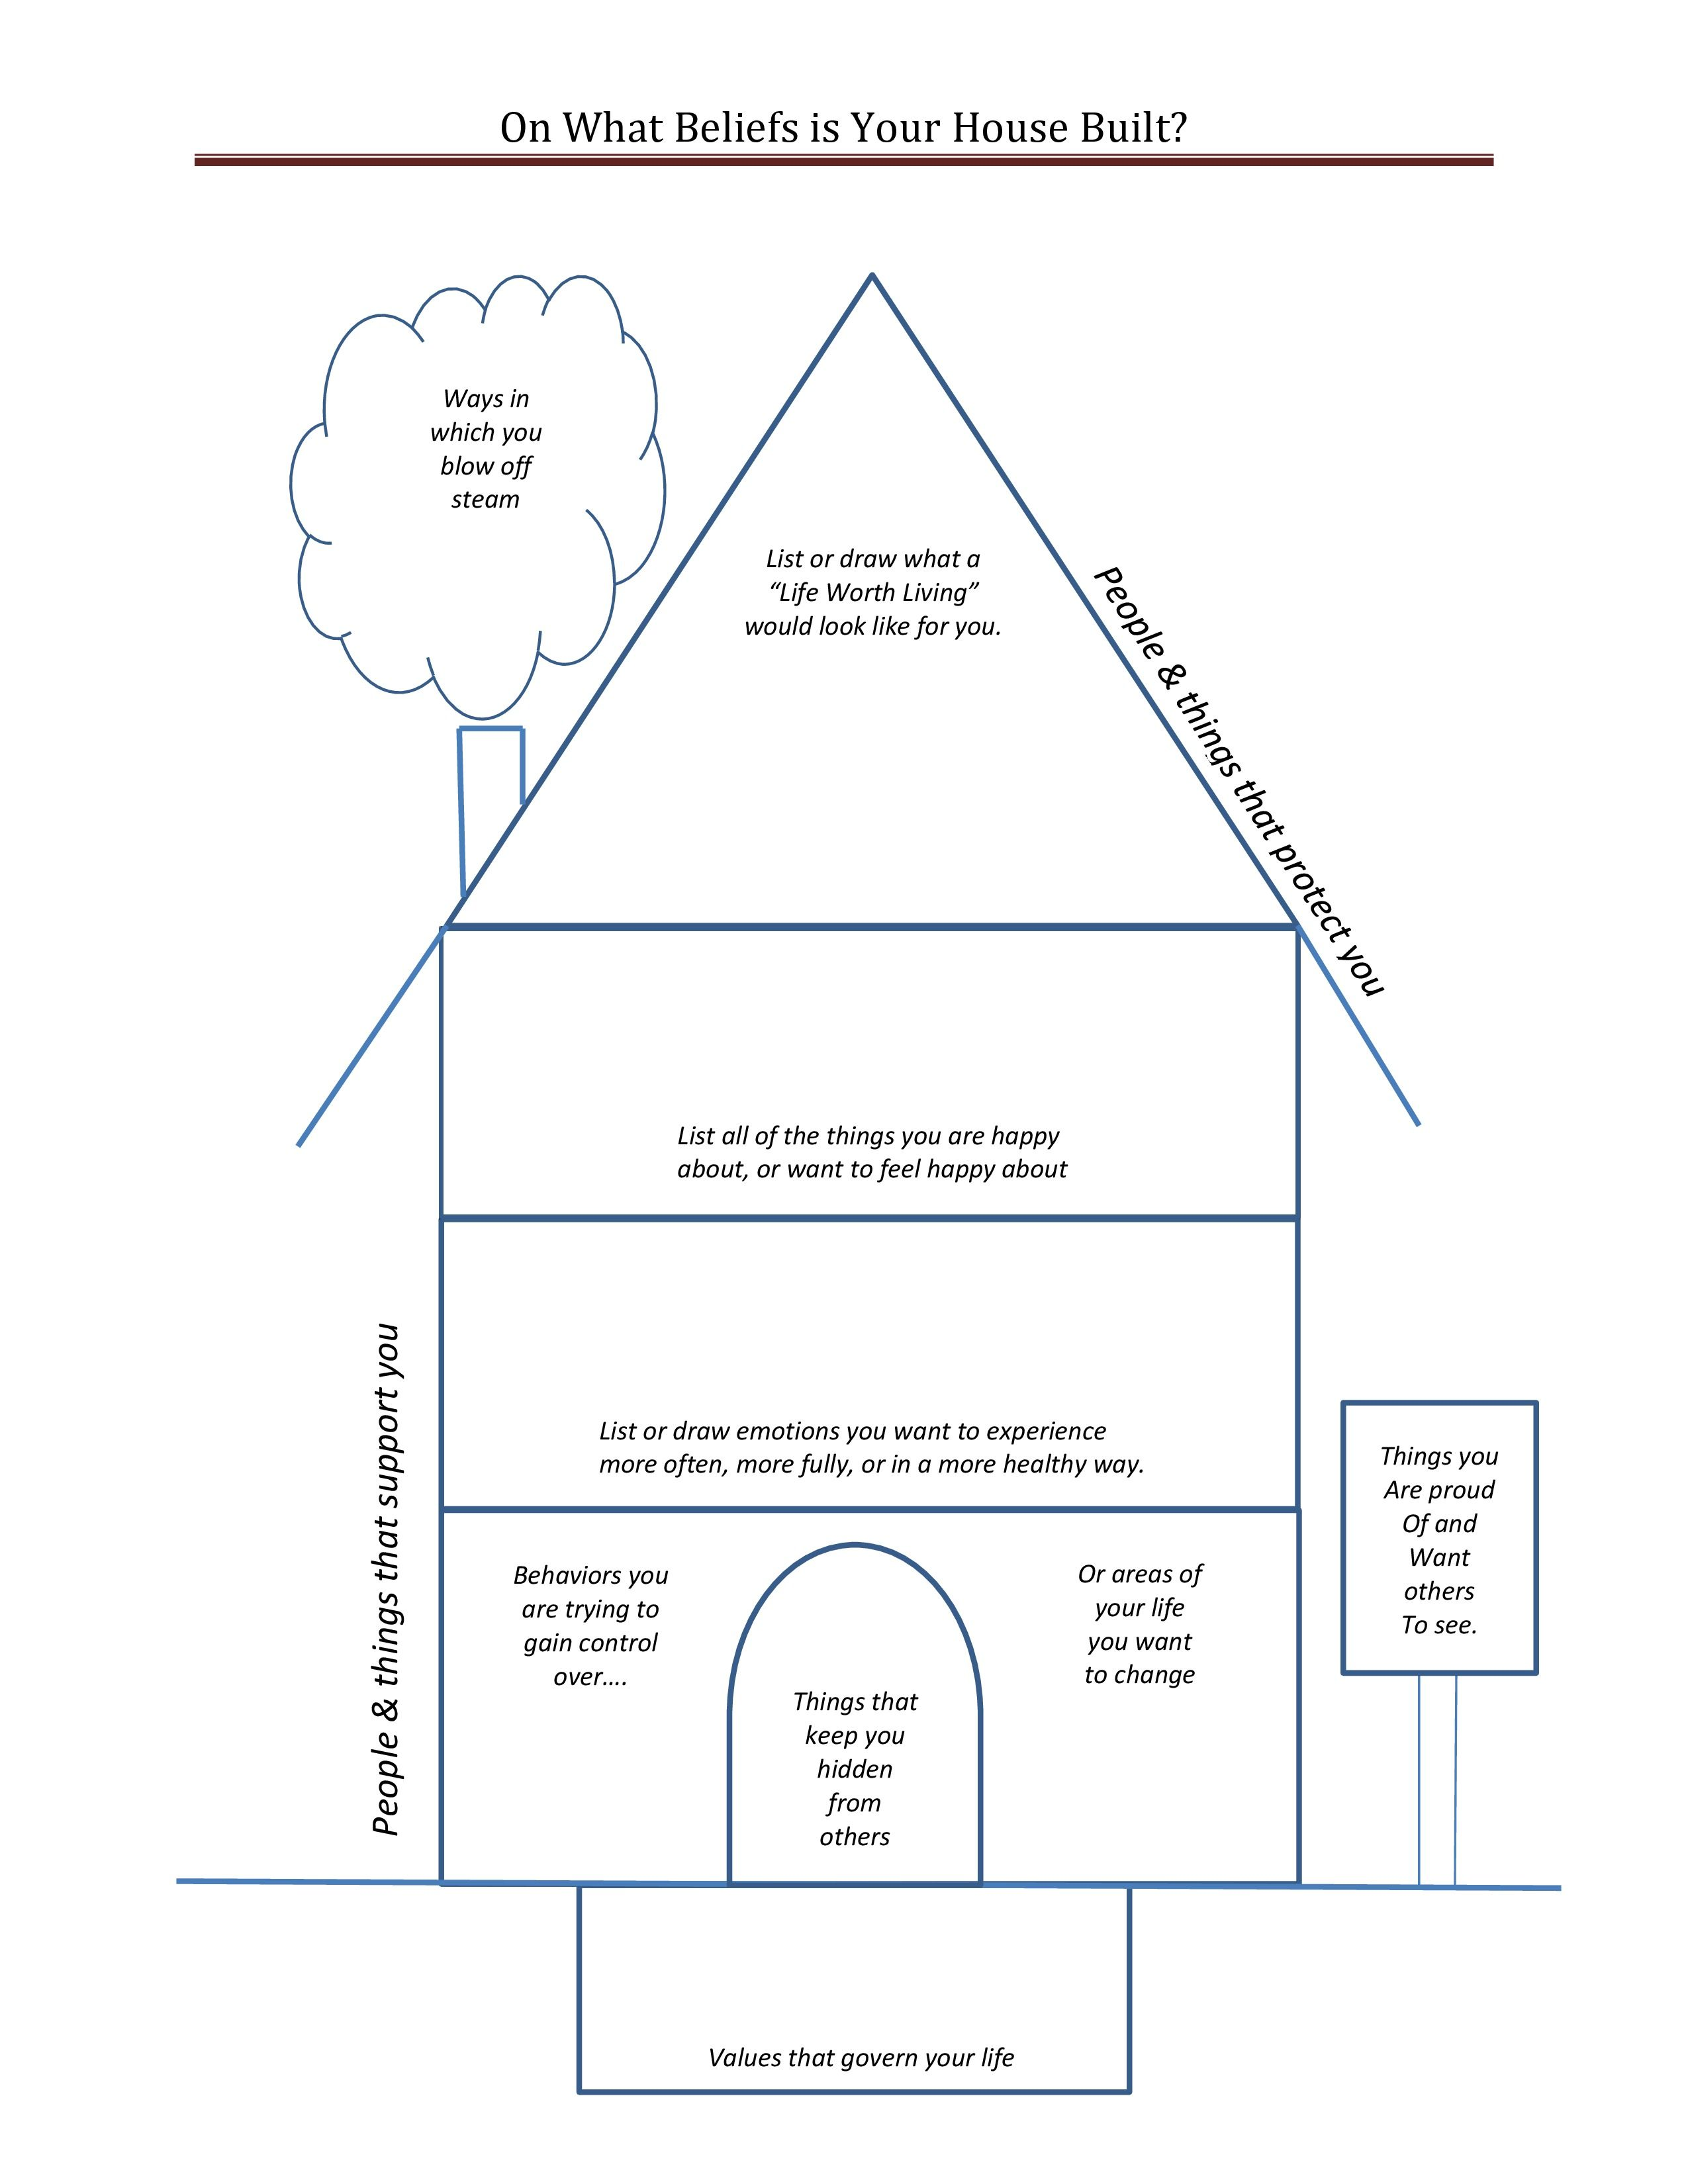 DBT House-I made a more user friendly version for all who may be interested. One has instructions, and the other is blank.